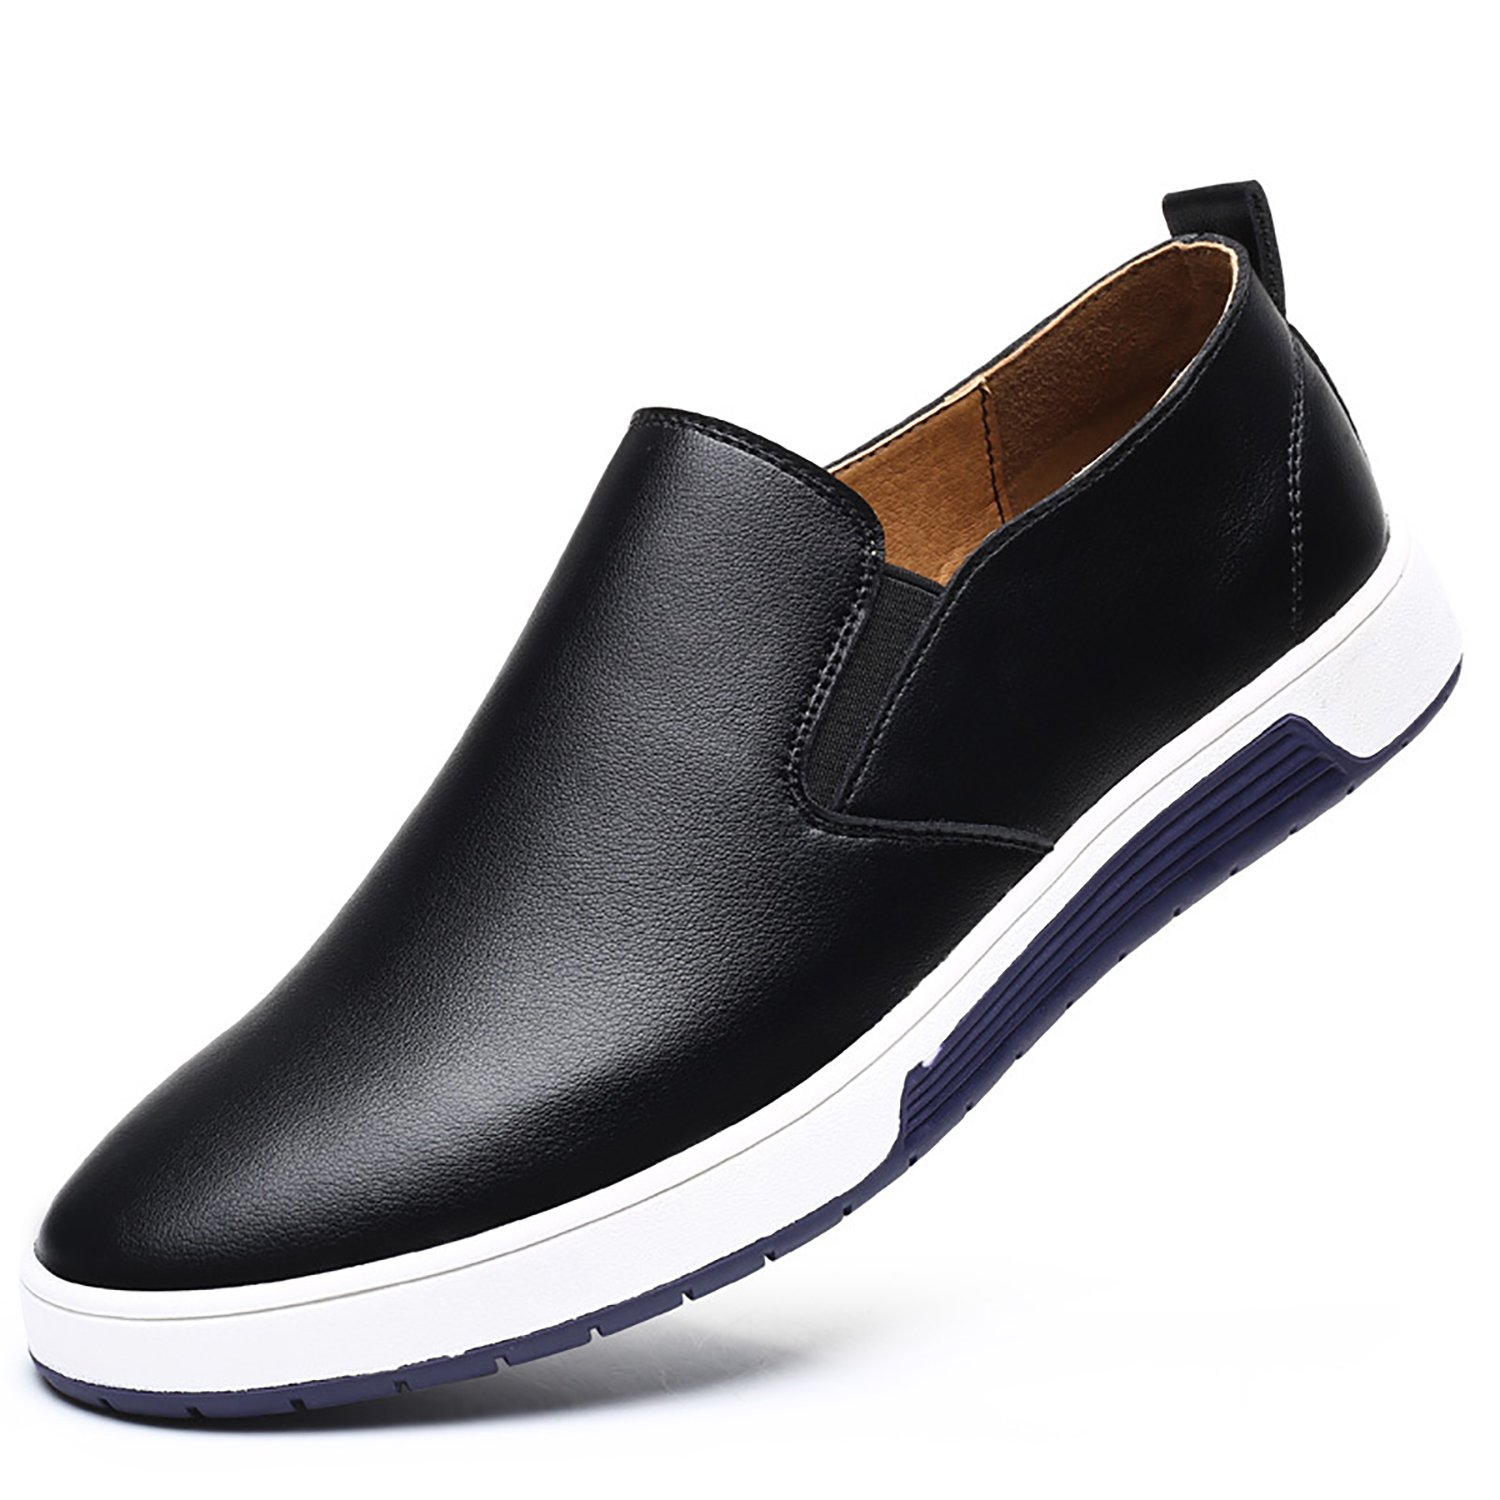 ef3d6be32f273 XIPAI Men's Casual Lofer Shoes Slip On Fashion Sneakers